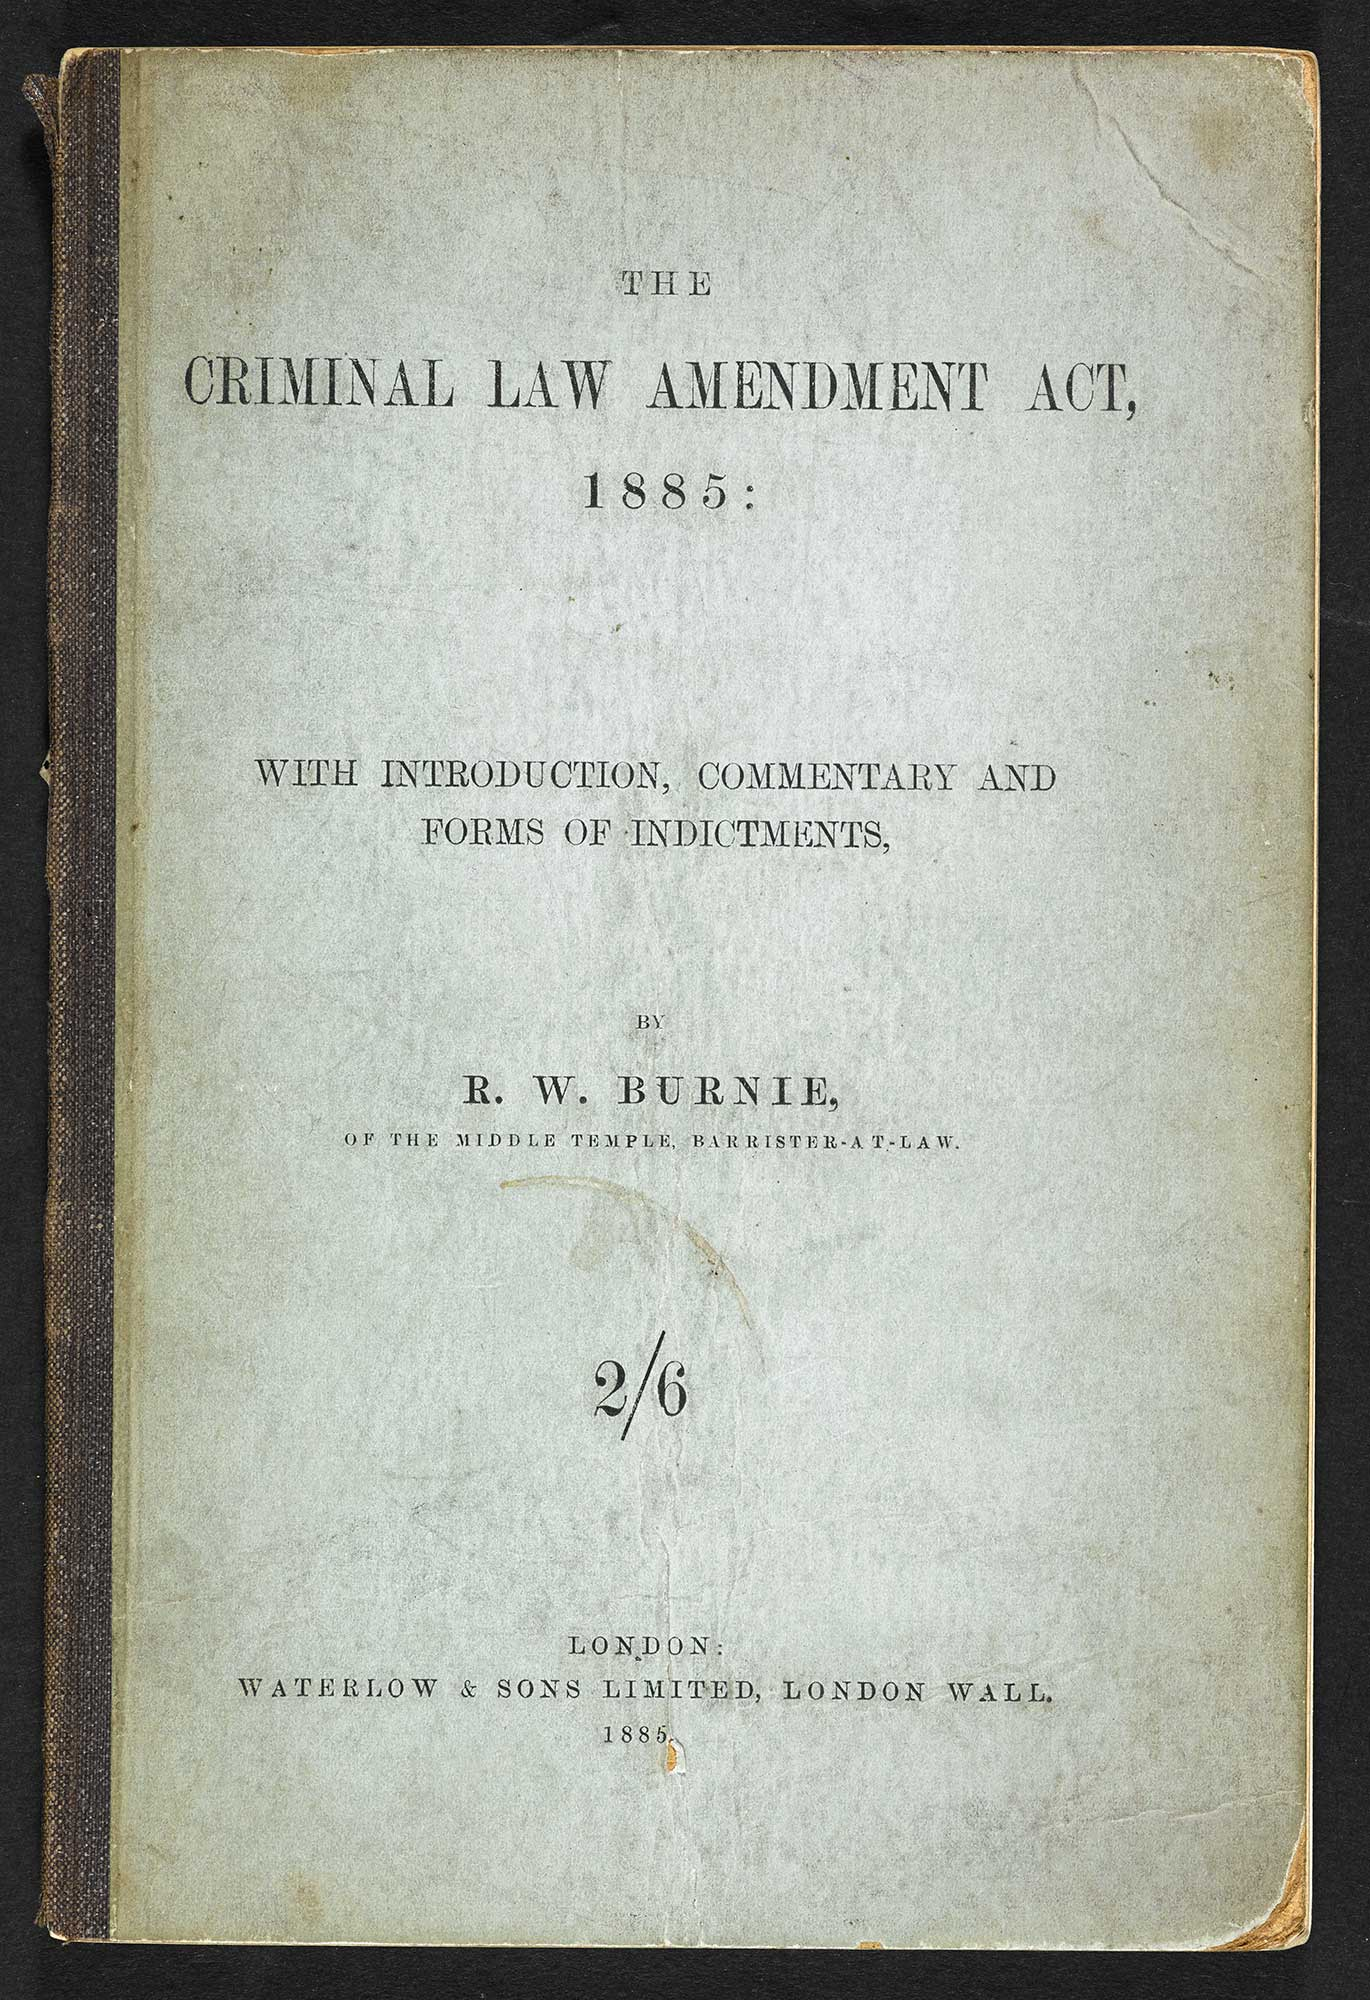 The Criminal Law Amendment Act, 1885